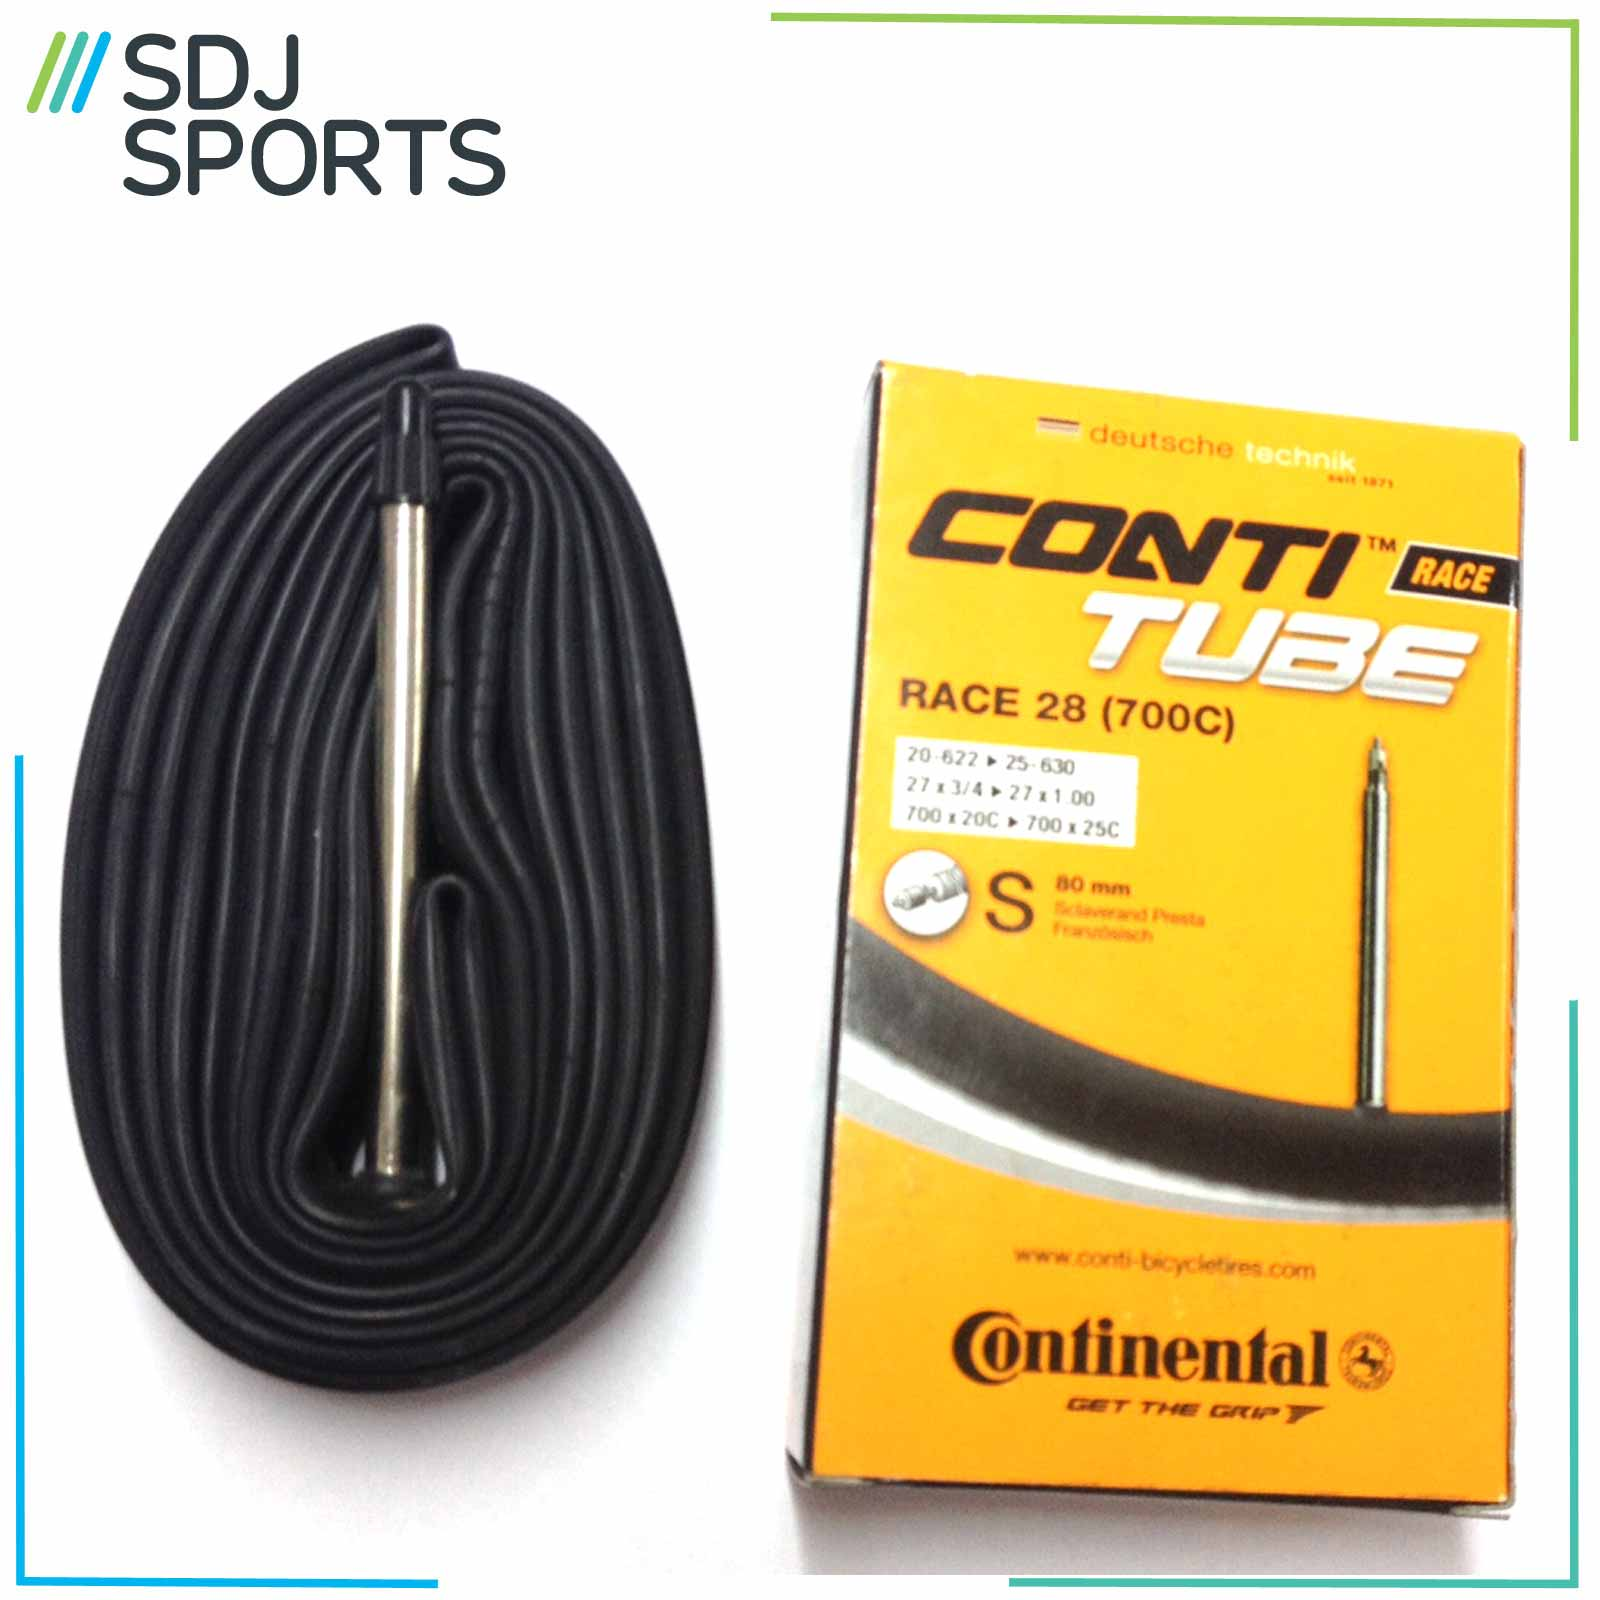 1X Continental Race 20-25 700C Inner Tube 80Mm Presta Valve Road Racing Bikes